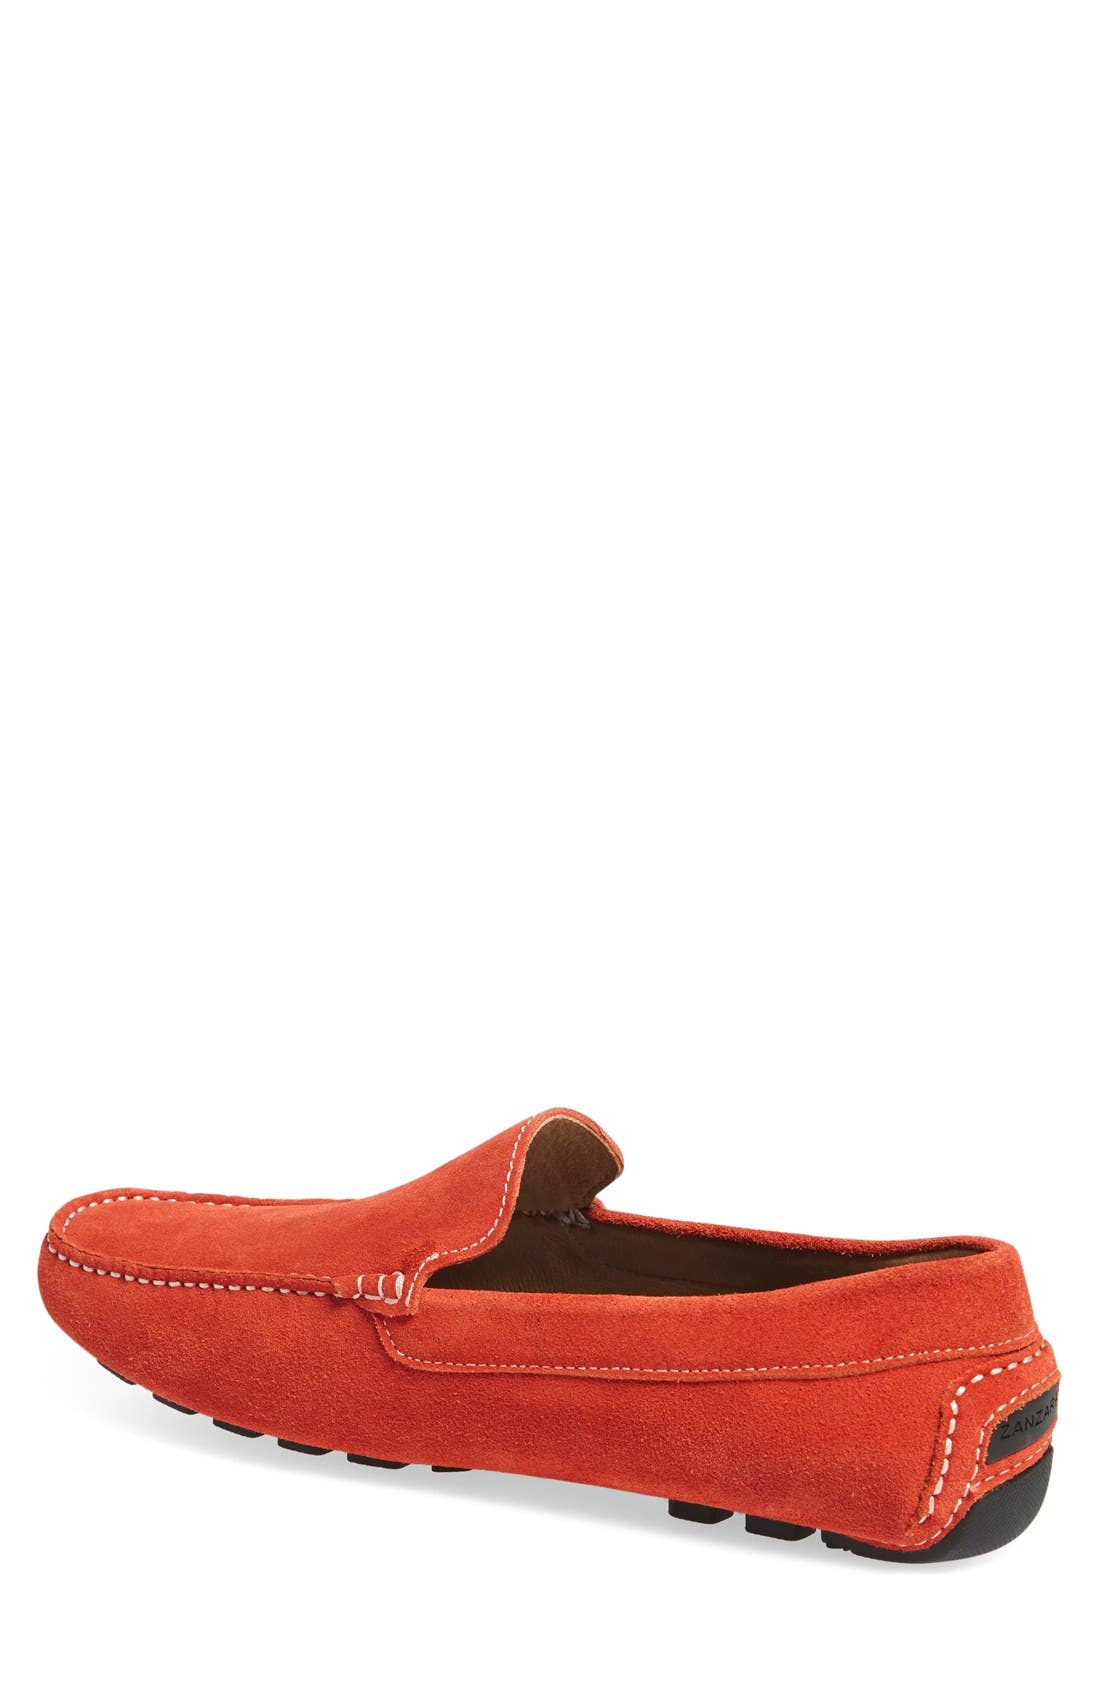 'Picasso' Slip-On Driver,                             Alternate thumbnail 2, color,                             Orange Leather